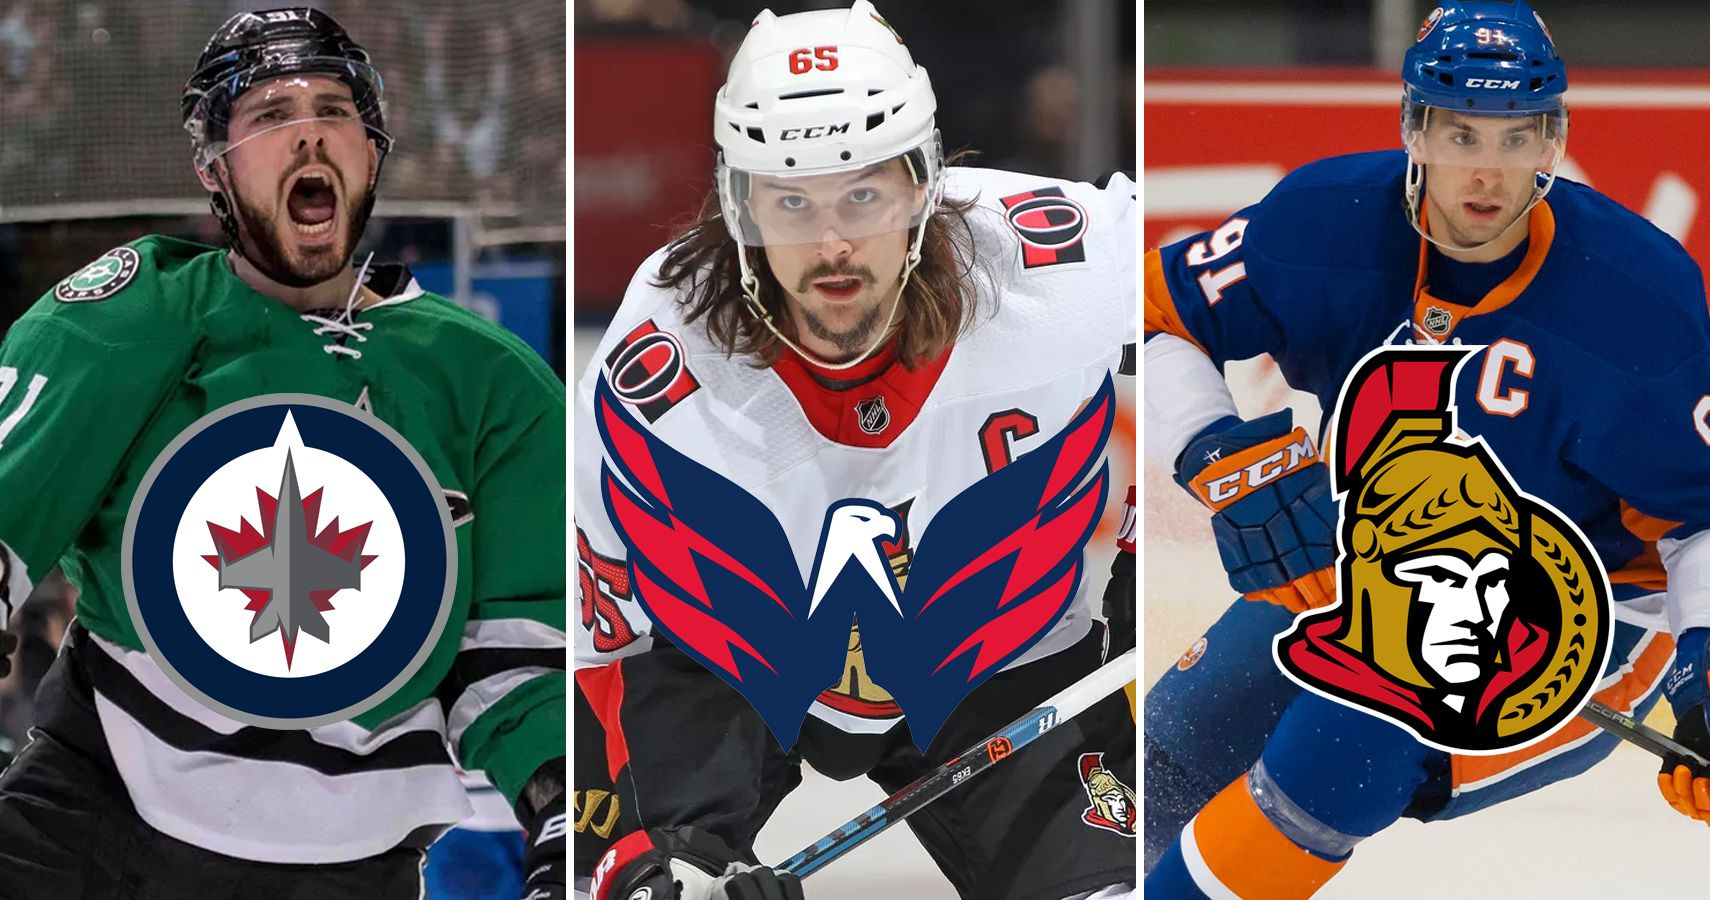 Projecting Where The Top 11 Nhl Free Agents Of 2018 And The Top 11